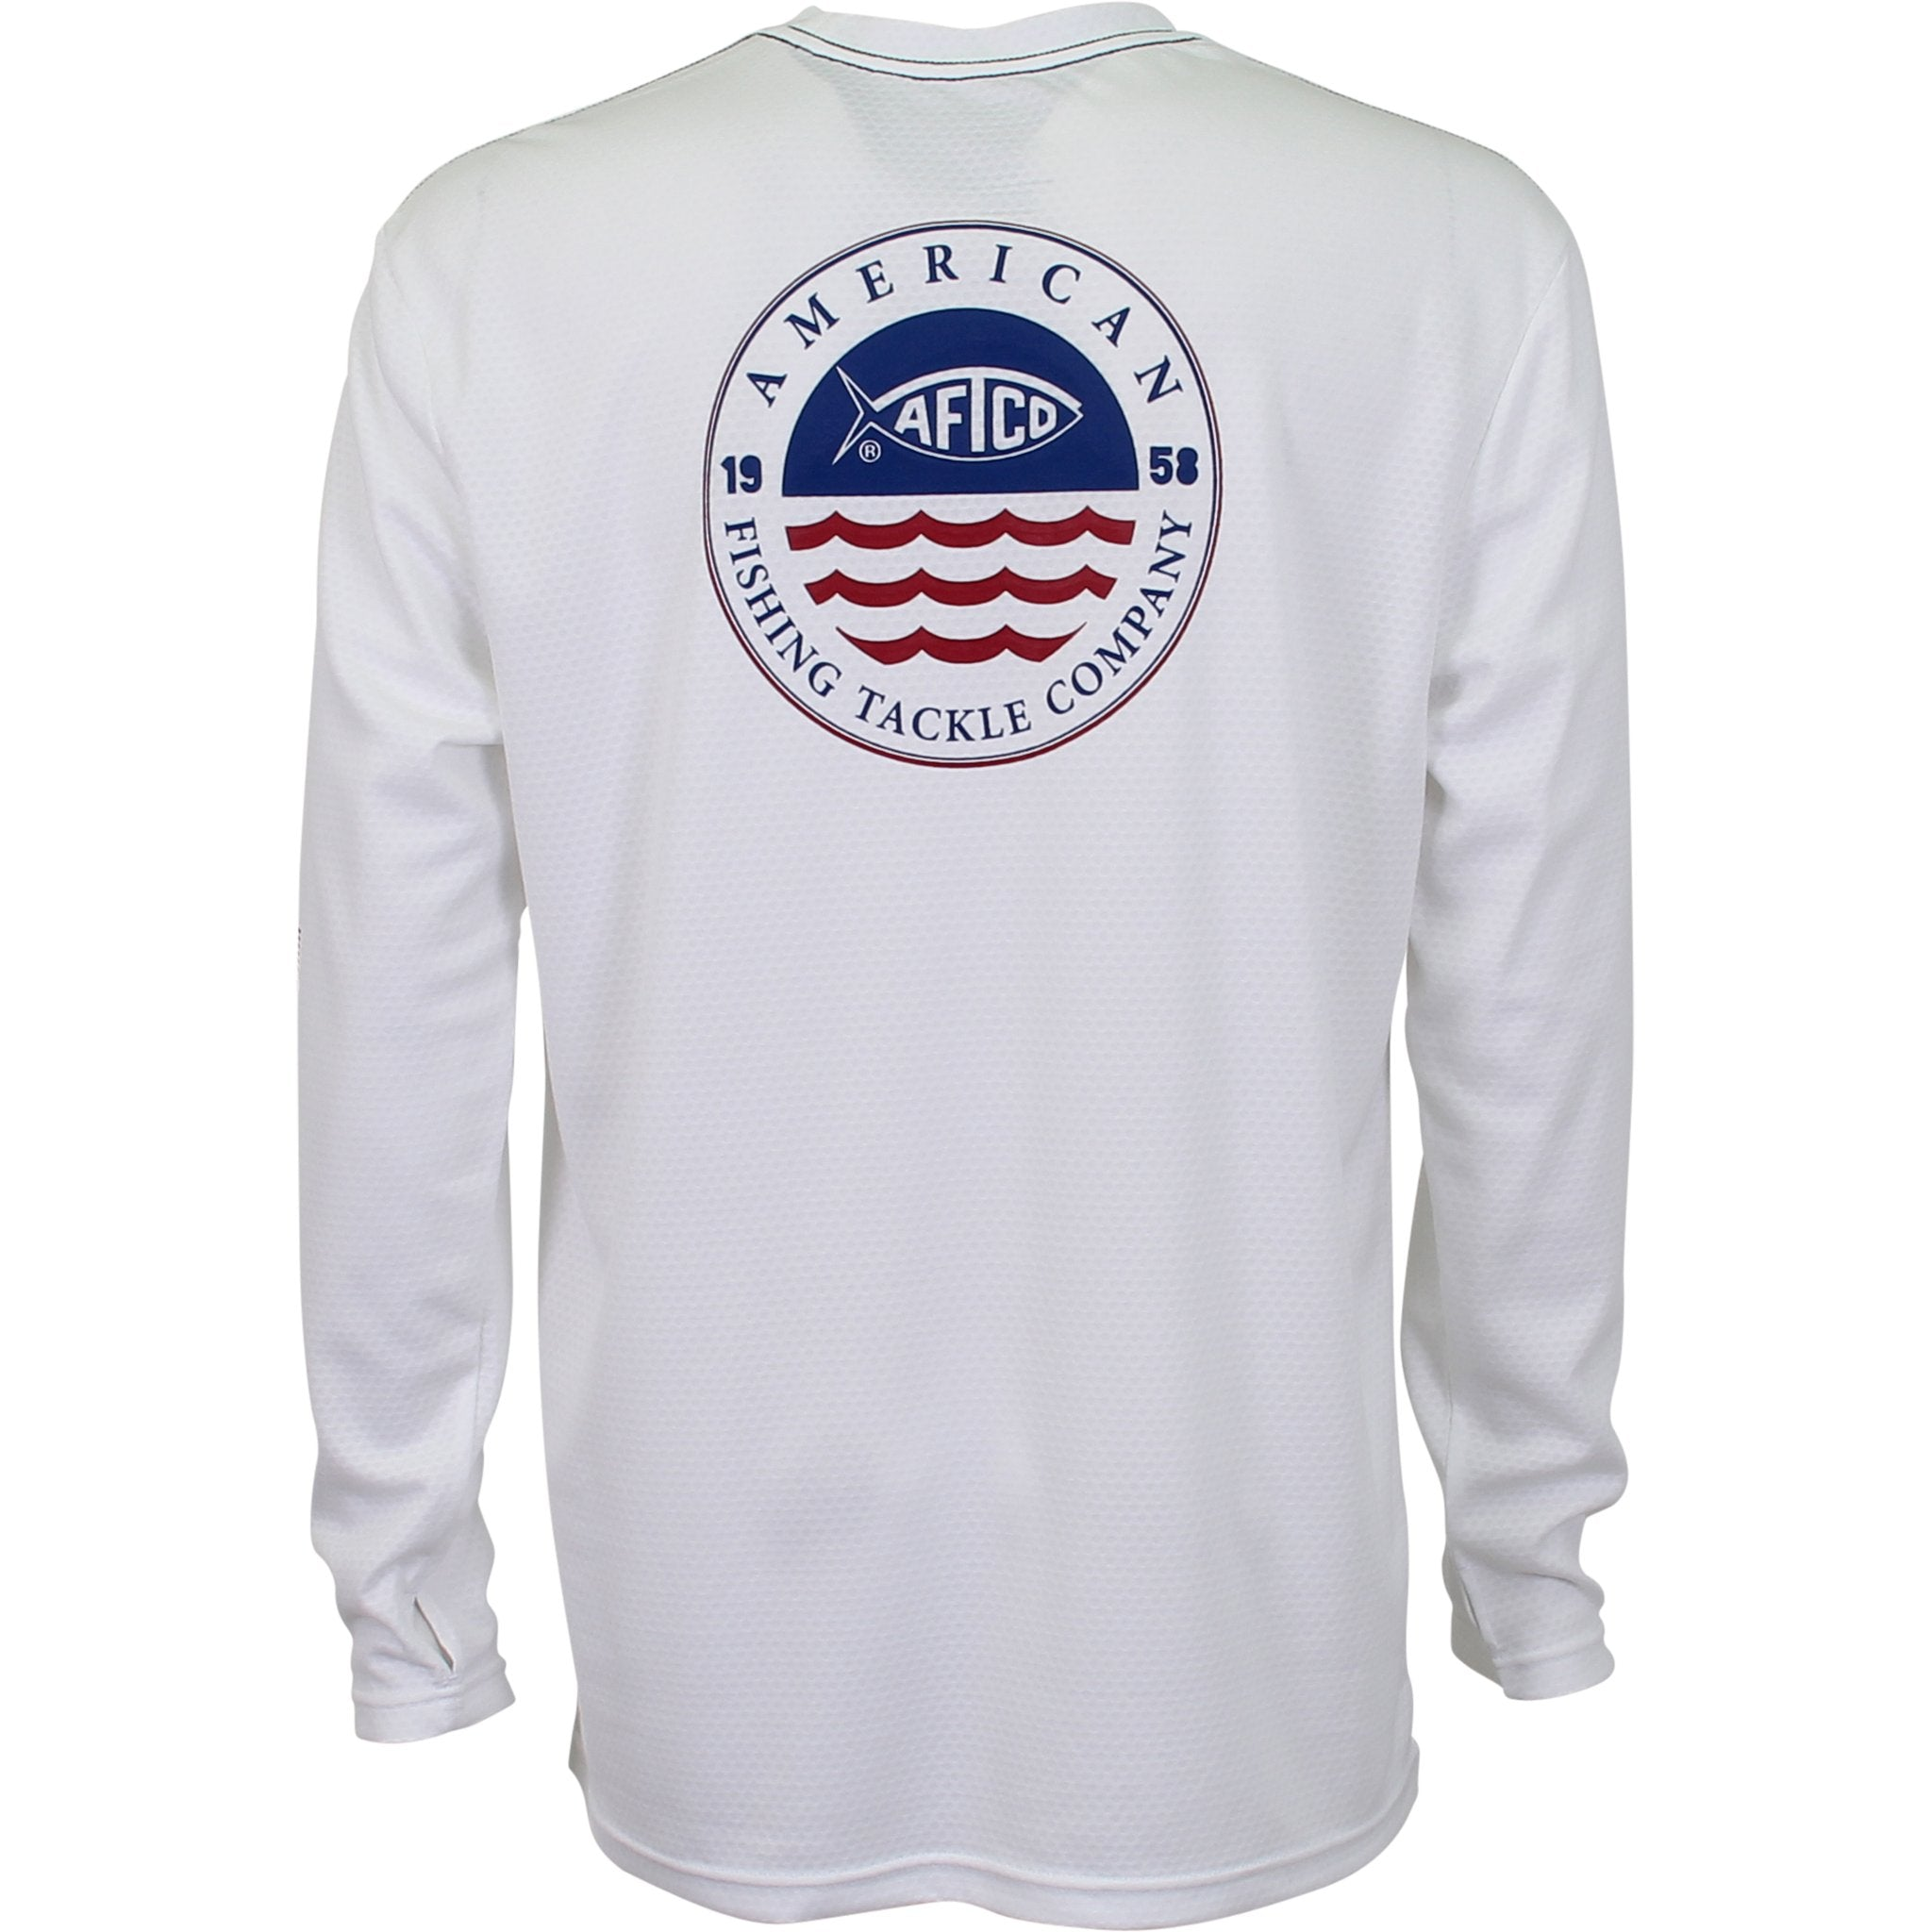 FRONTLINE PERFORMANCE LS SHIRT